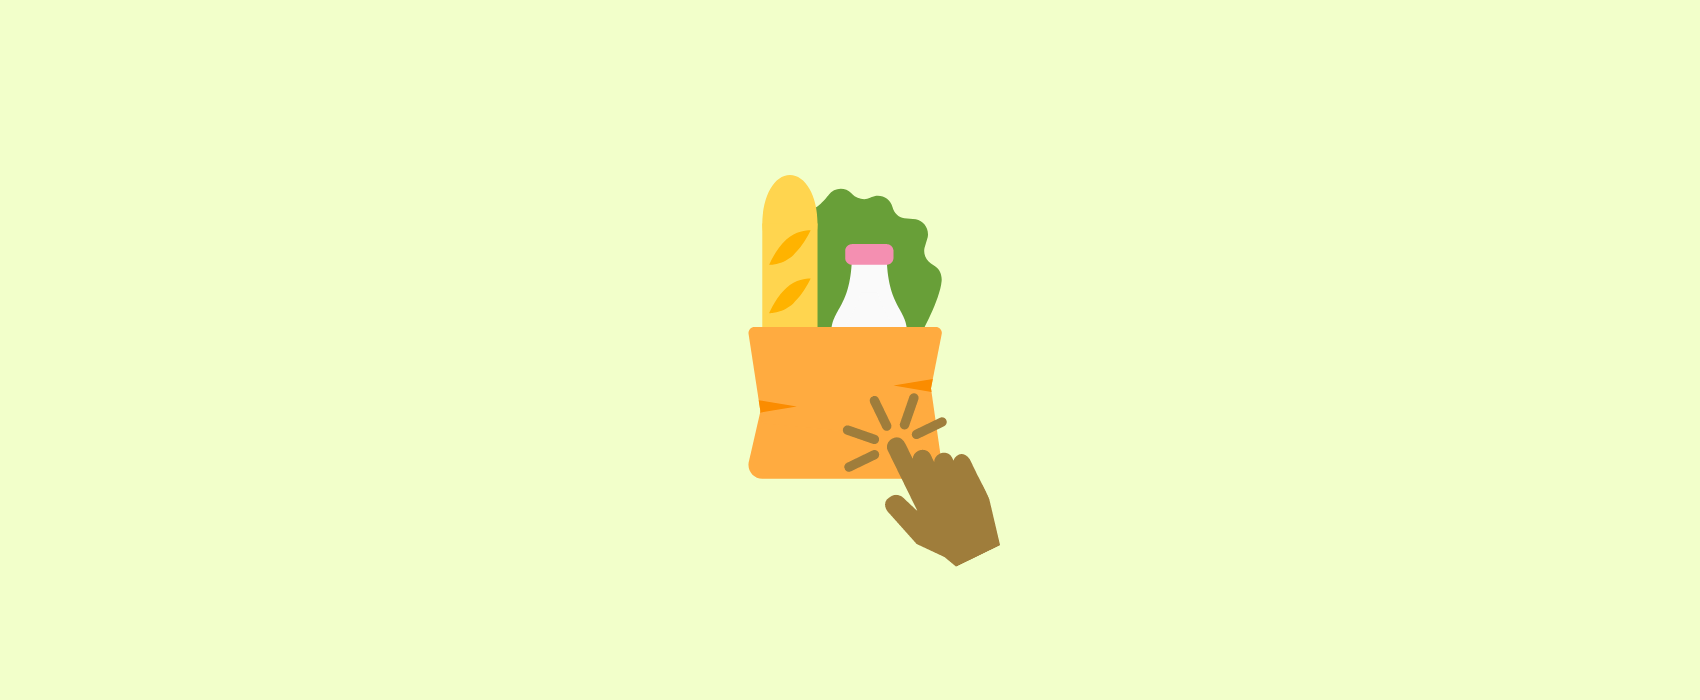 News release: Rosie Leads Grocery Ecommerce Solutions with Deep Linking, One-Click Checkout